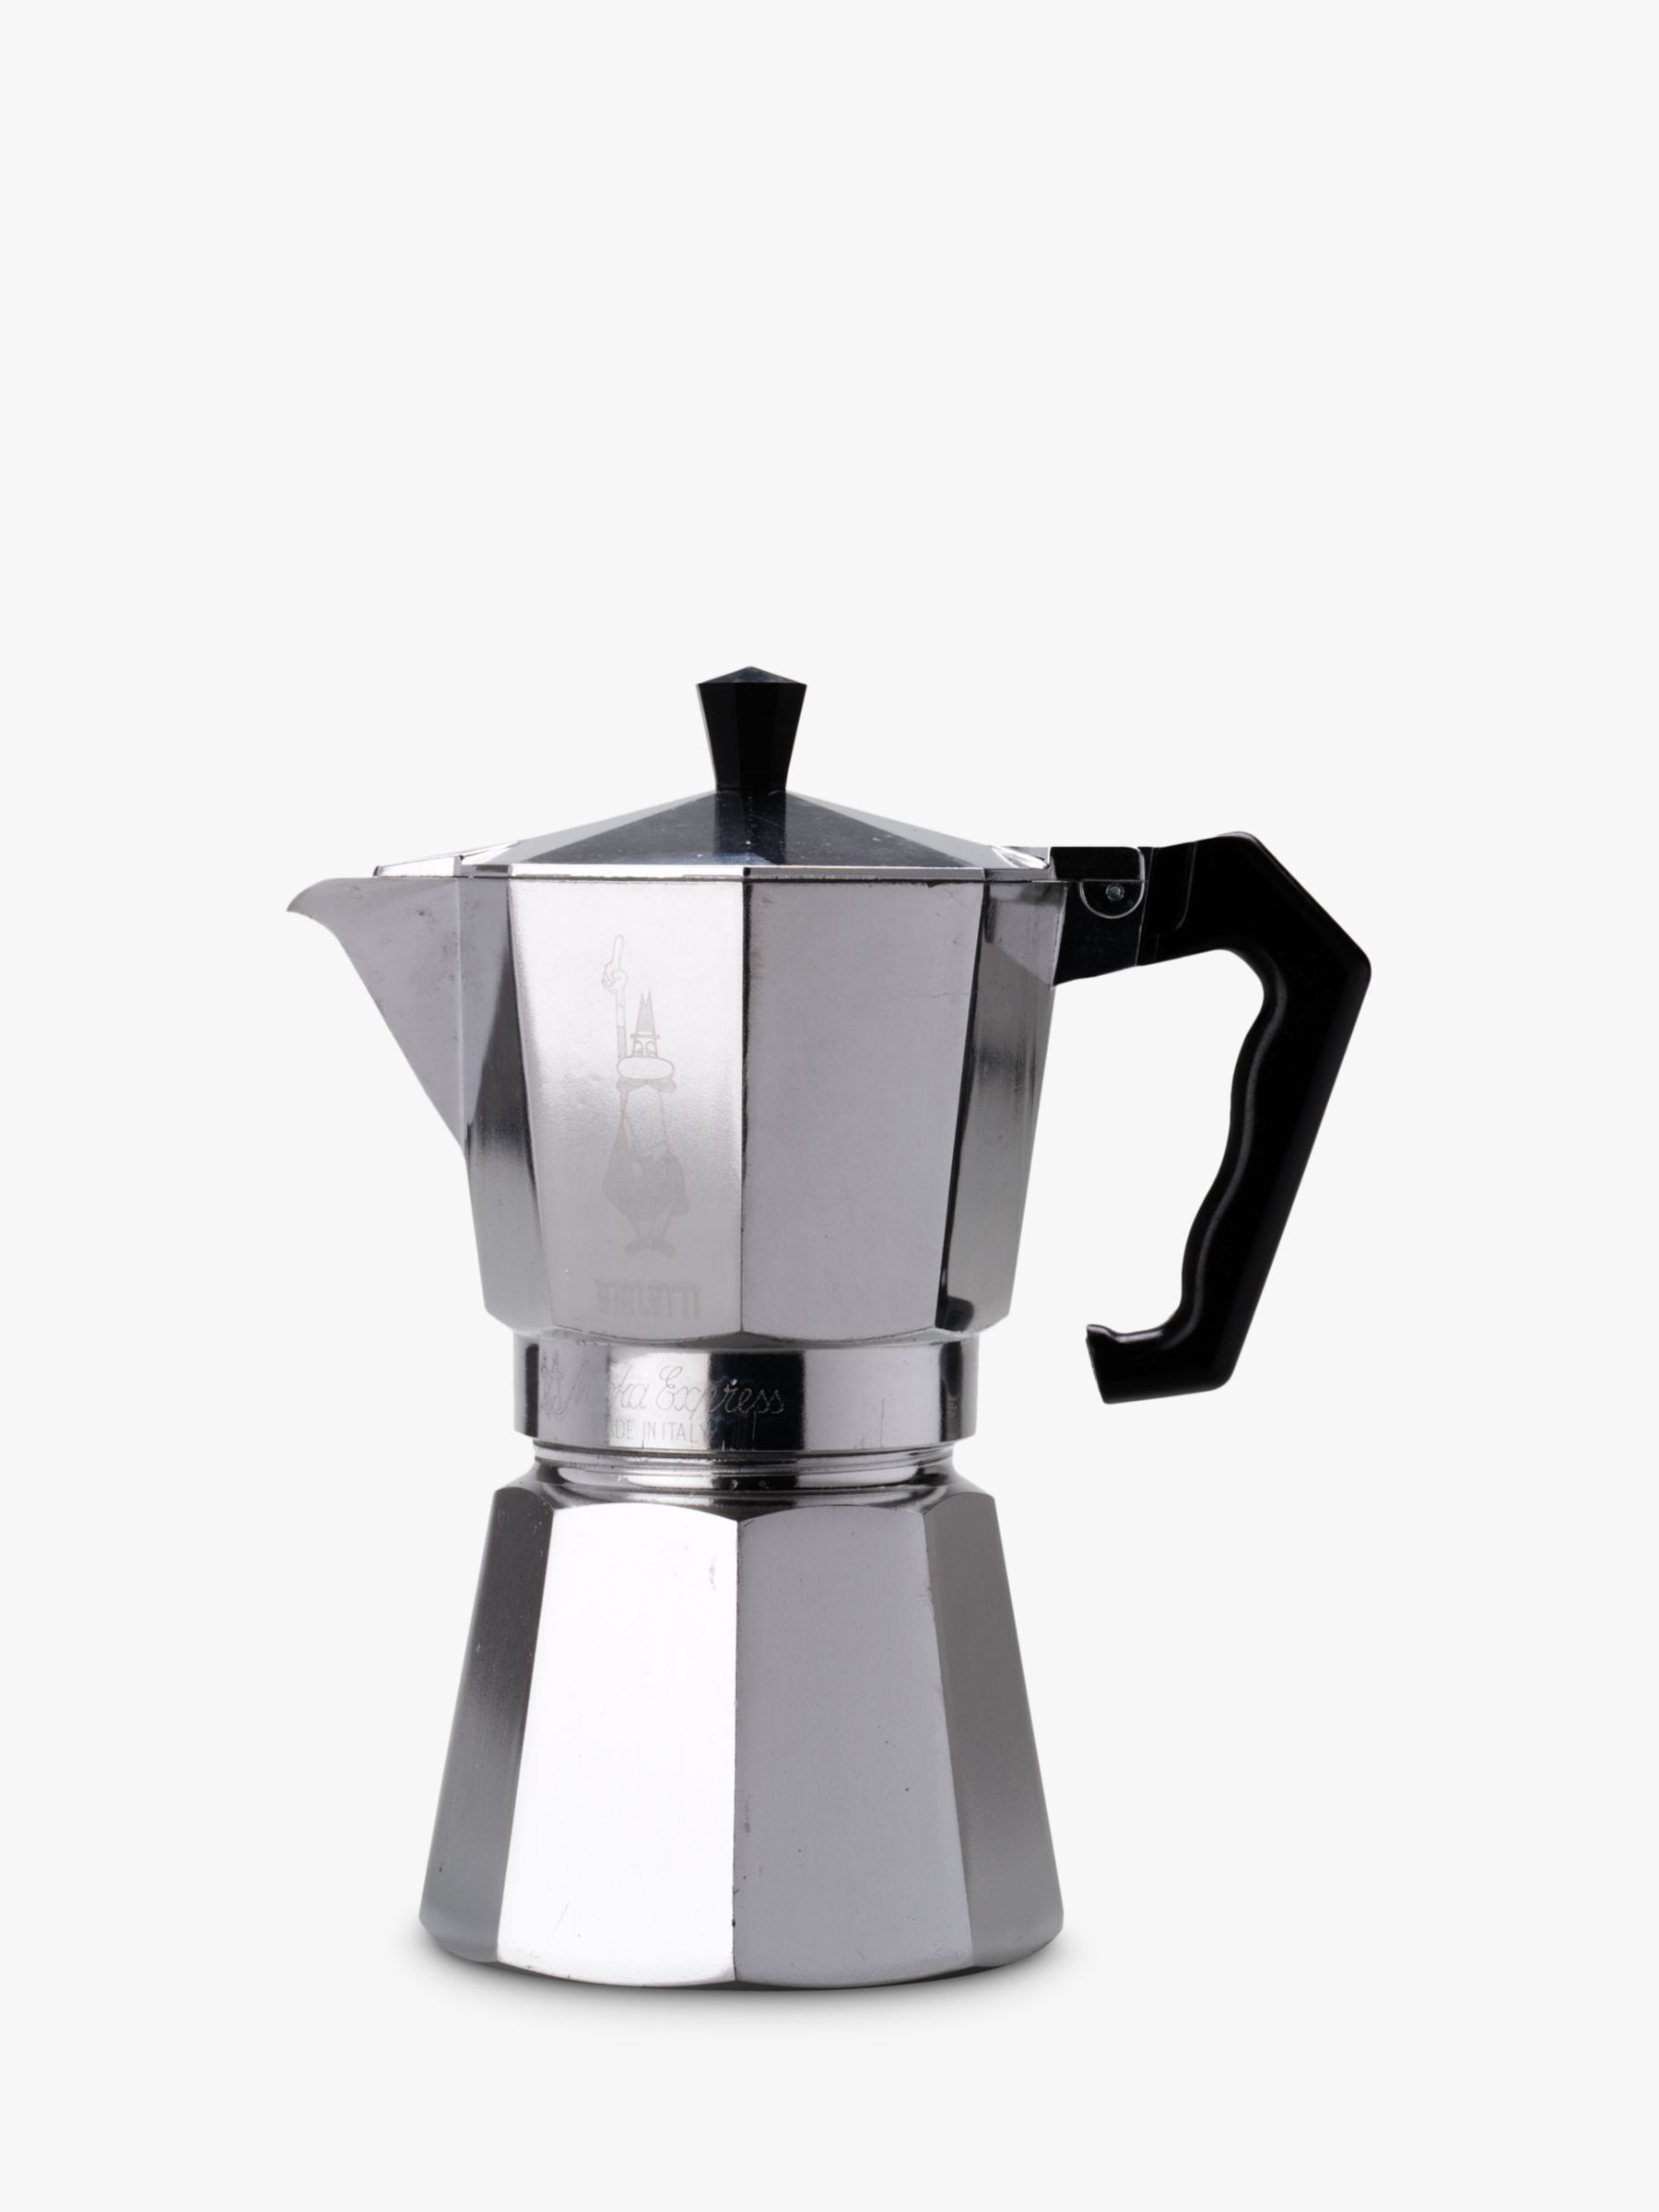 Hob Coffee Maker How To Use : Buy Bialetti Moka Express Hob Espresso Maker John Lewis